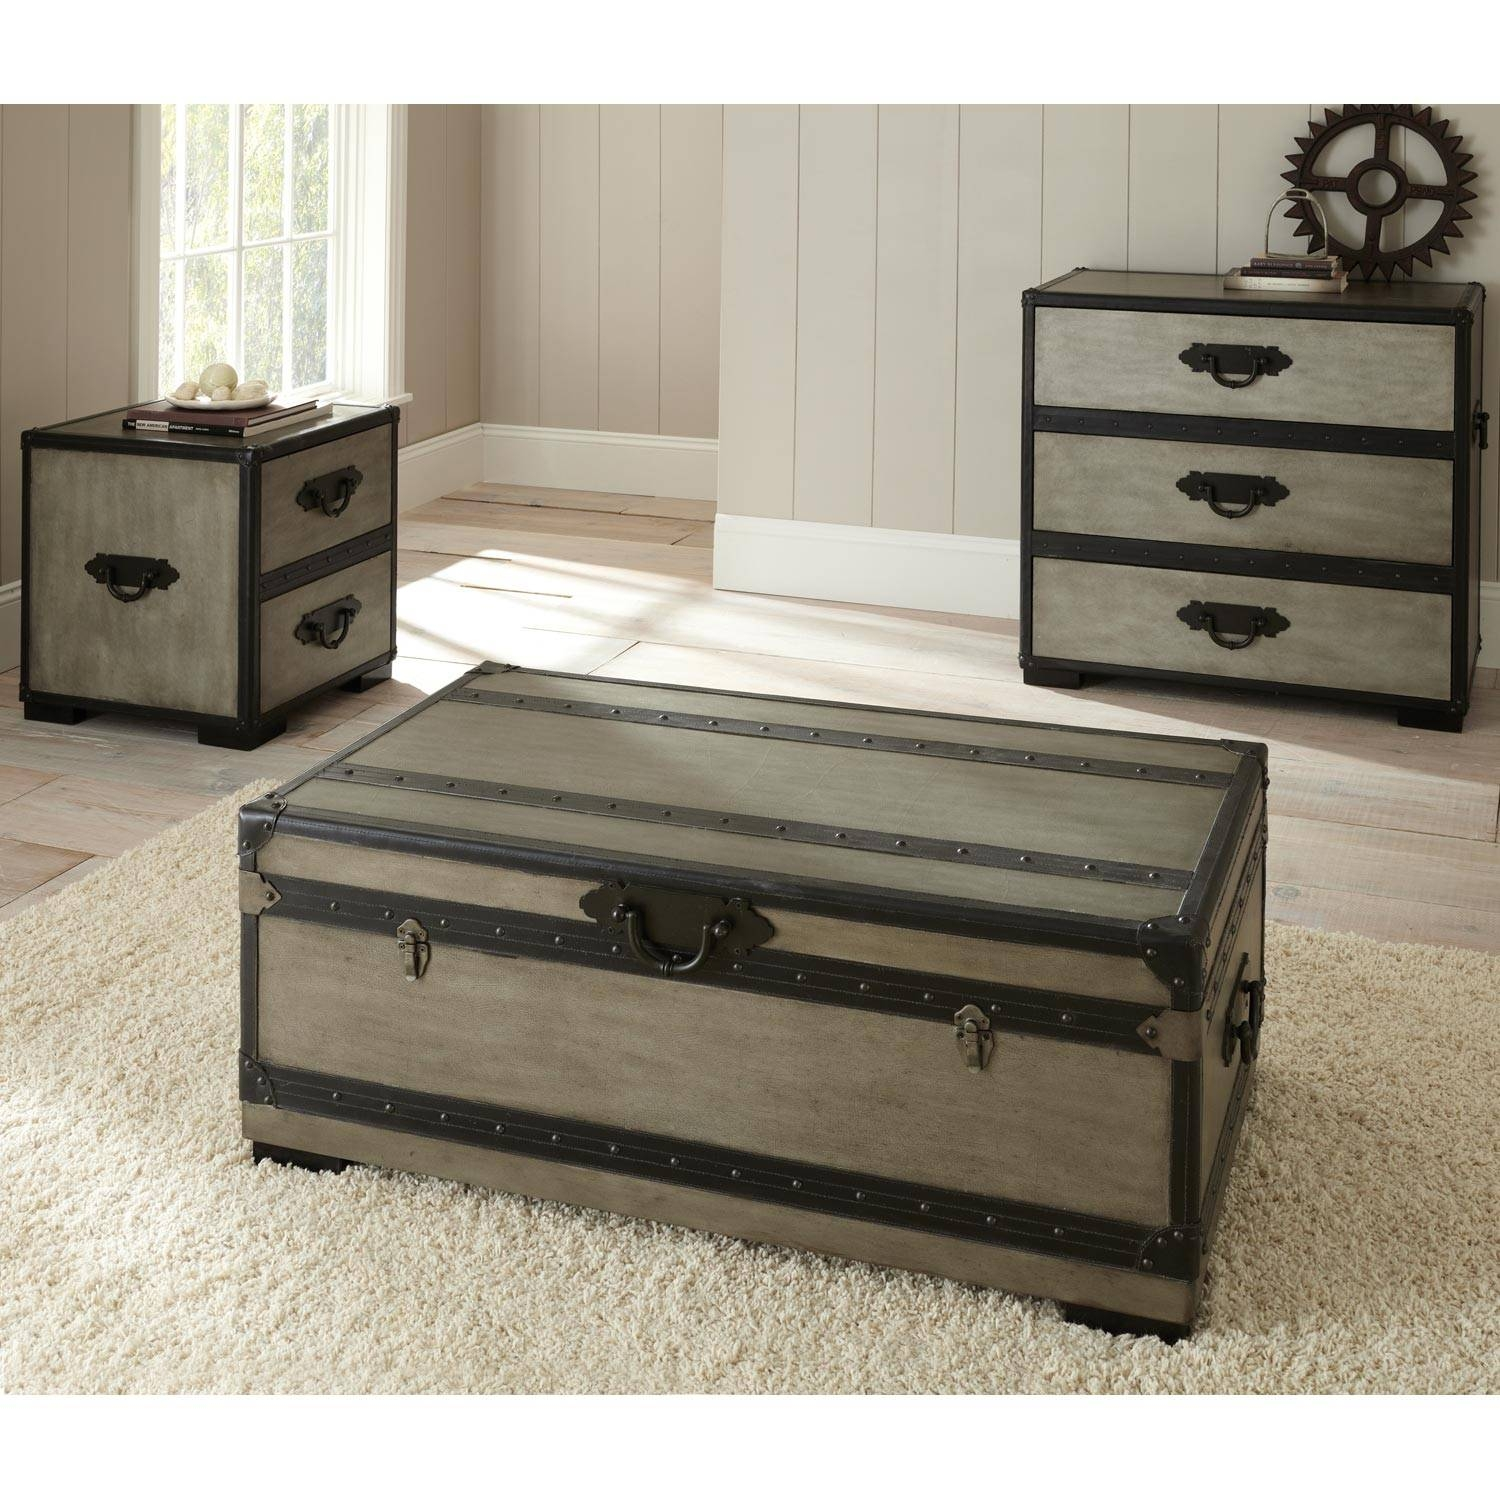 Dark Wood Chest Coffee Table | Idi Design within Dark Wood Chest Coffee Tables (Image 16 of 30)